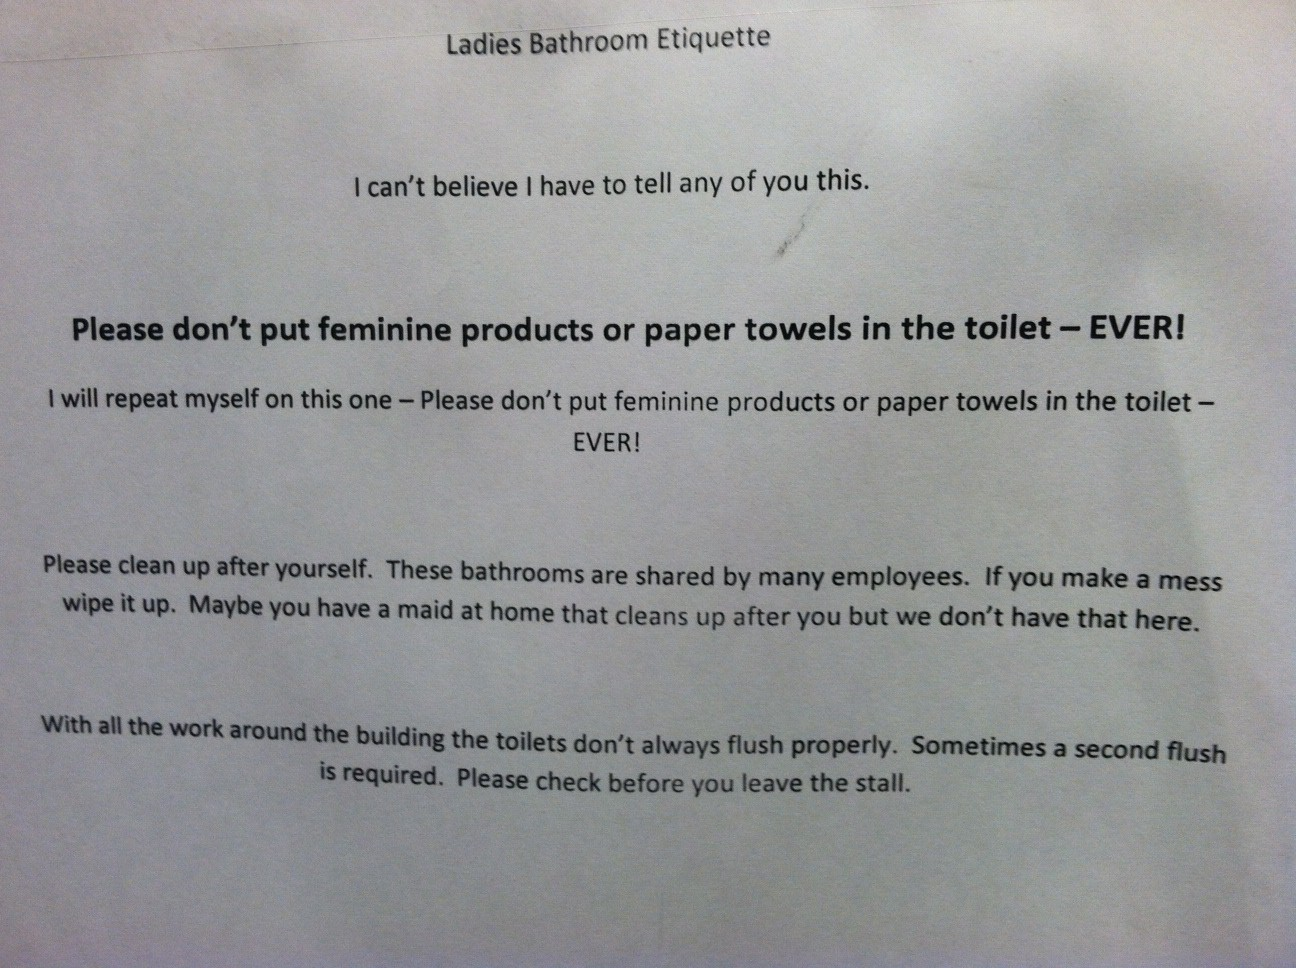 Ladies Bathroom Etiquette